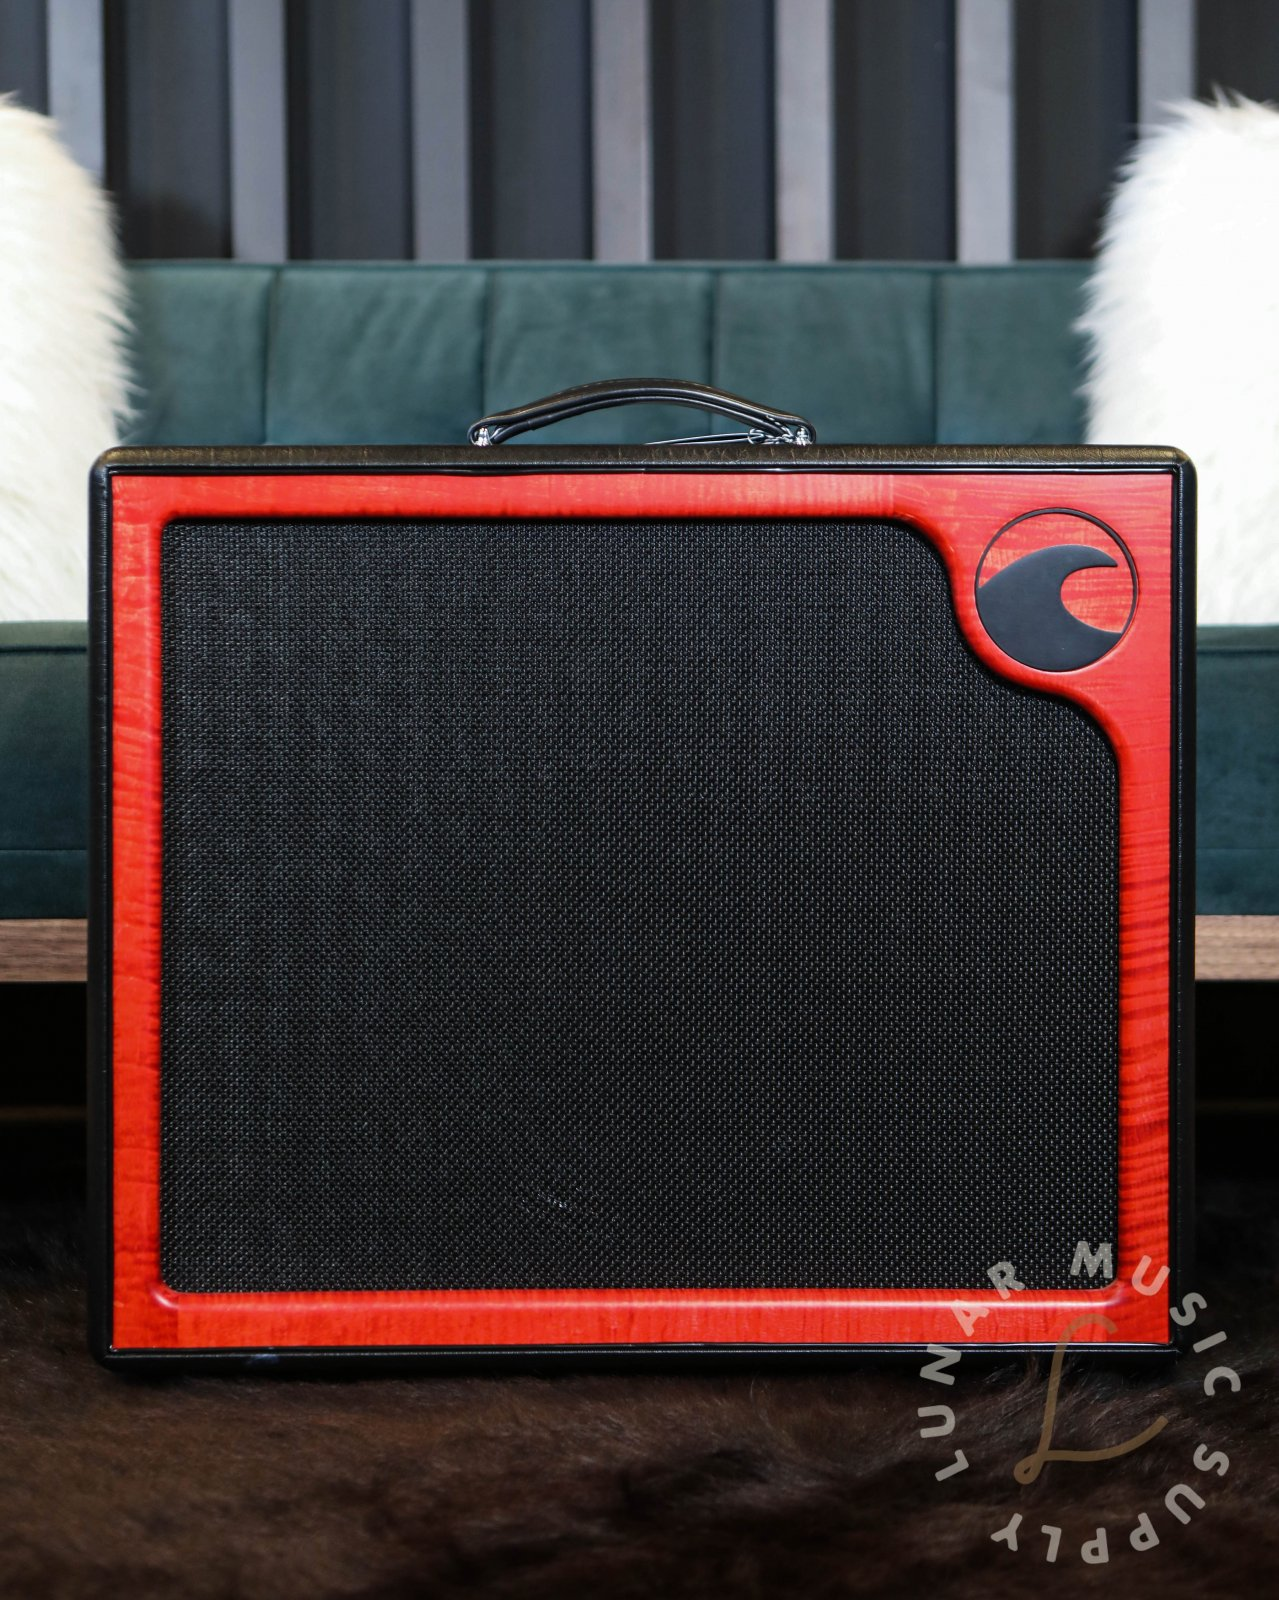 Port City Amplification Pearl Combo 50w Amplifier - Red Flamed Maple Frame